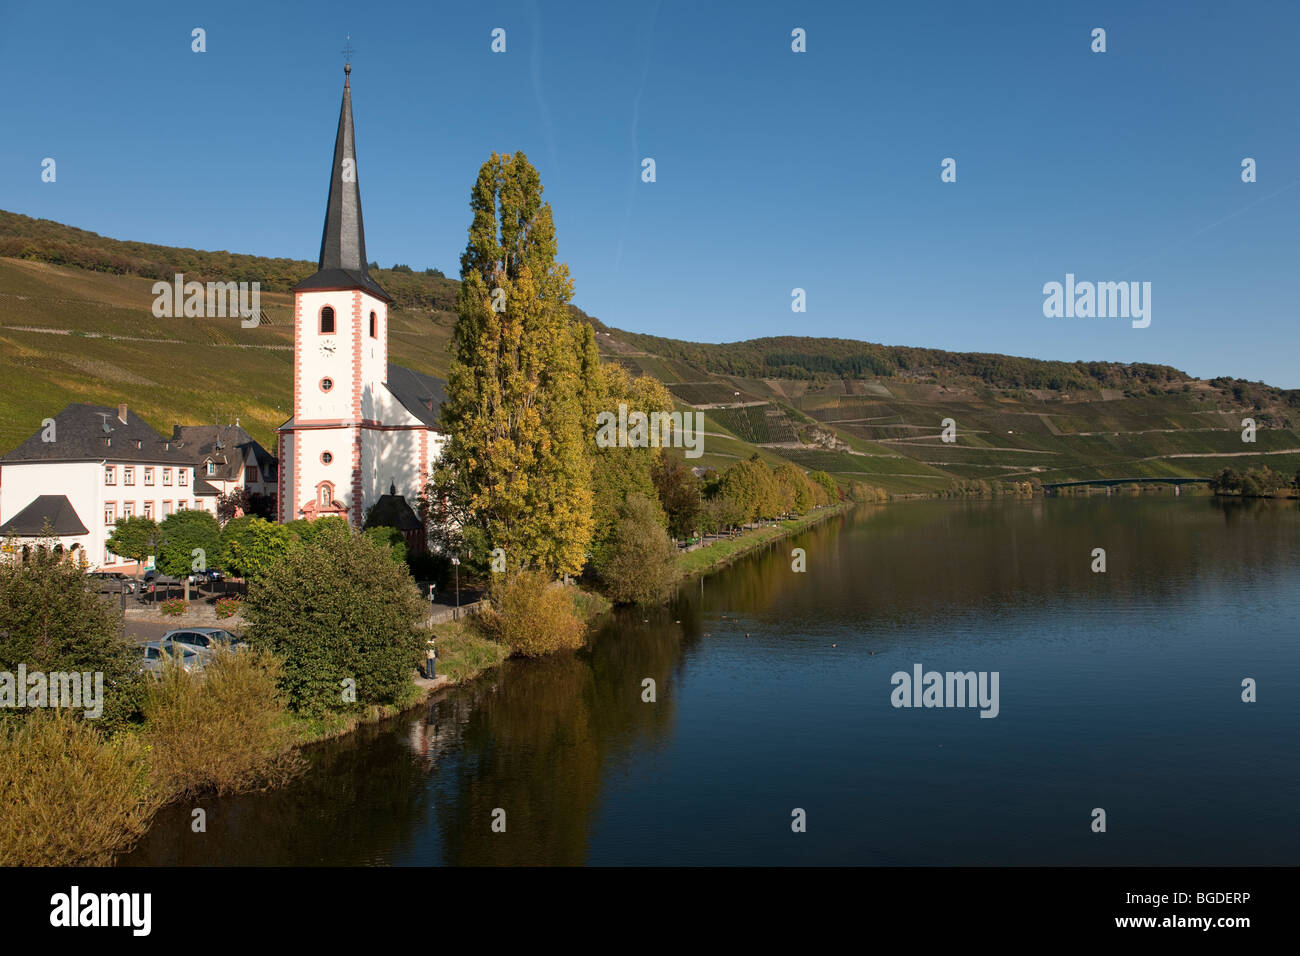 Piesport on the Moselle river, Rhineland-Palatinate, Germany, Europe - Stock Image